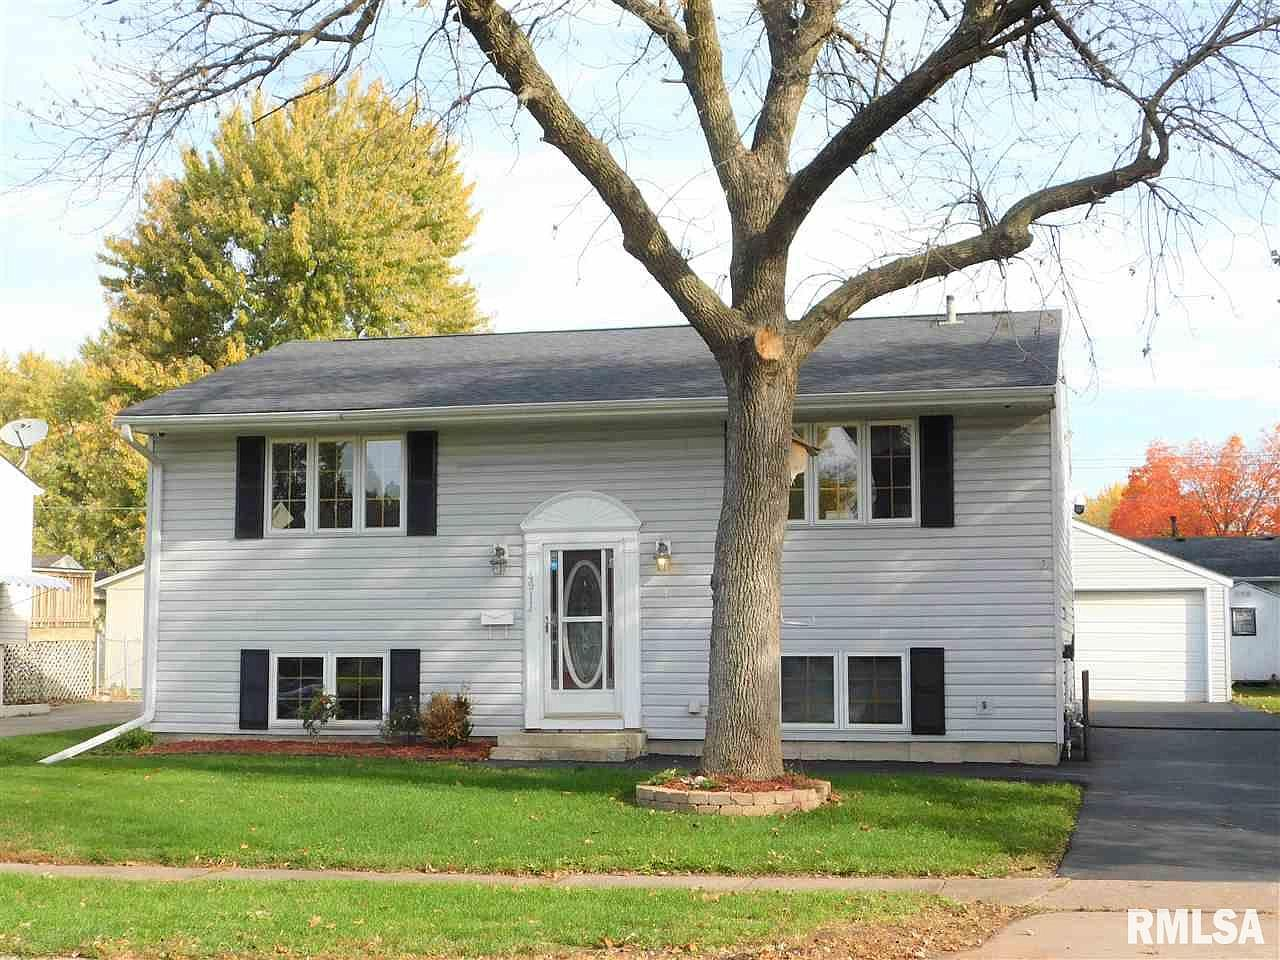 4911 49th Ave Moline Il 61265 Zillow